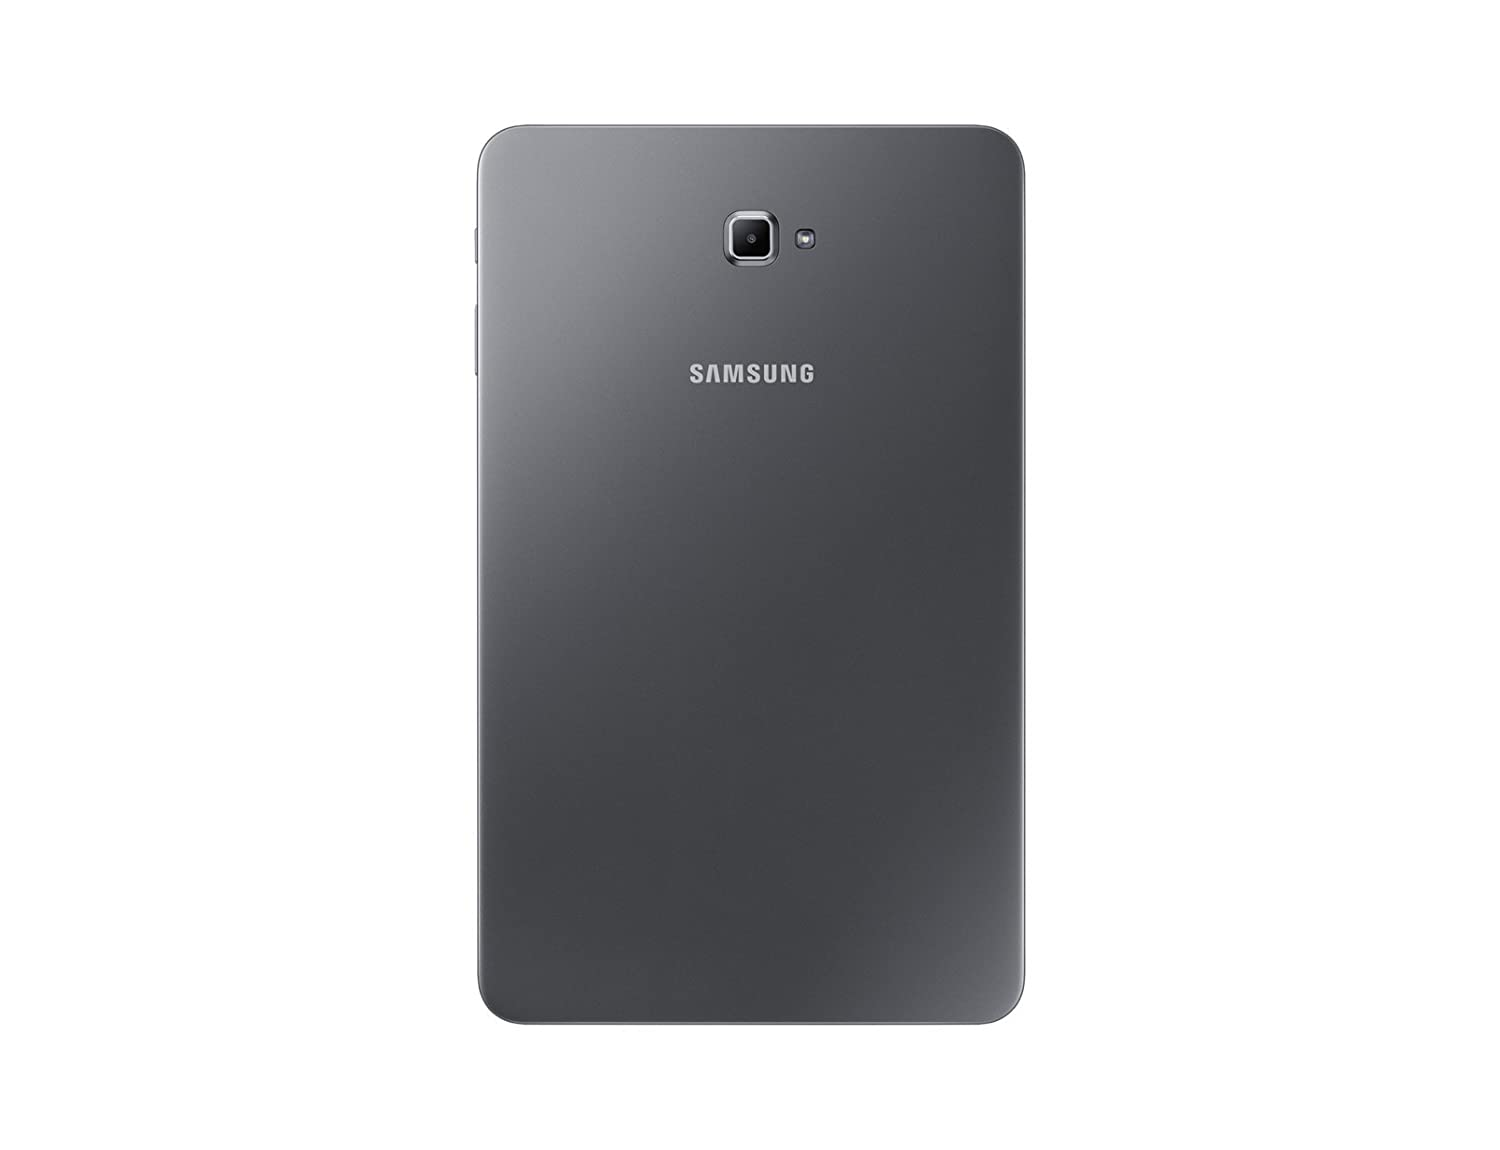 Samsung Galaxy Tab A SM-T580 Tablet Octa-Core 1.6GHz, 2GB RAM, 8MP/2MP, Wi-Fi, 32GB eMMC, Android 6.0, Gris